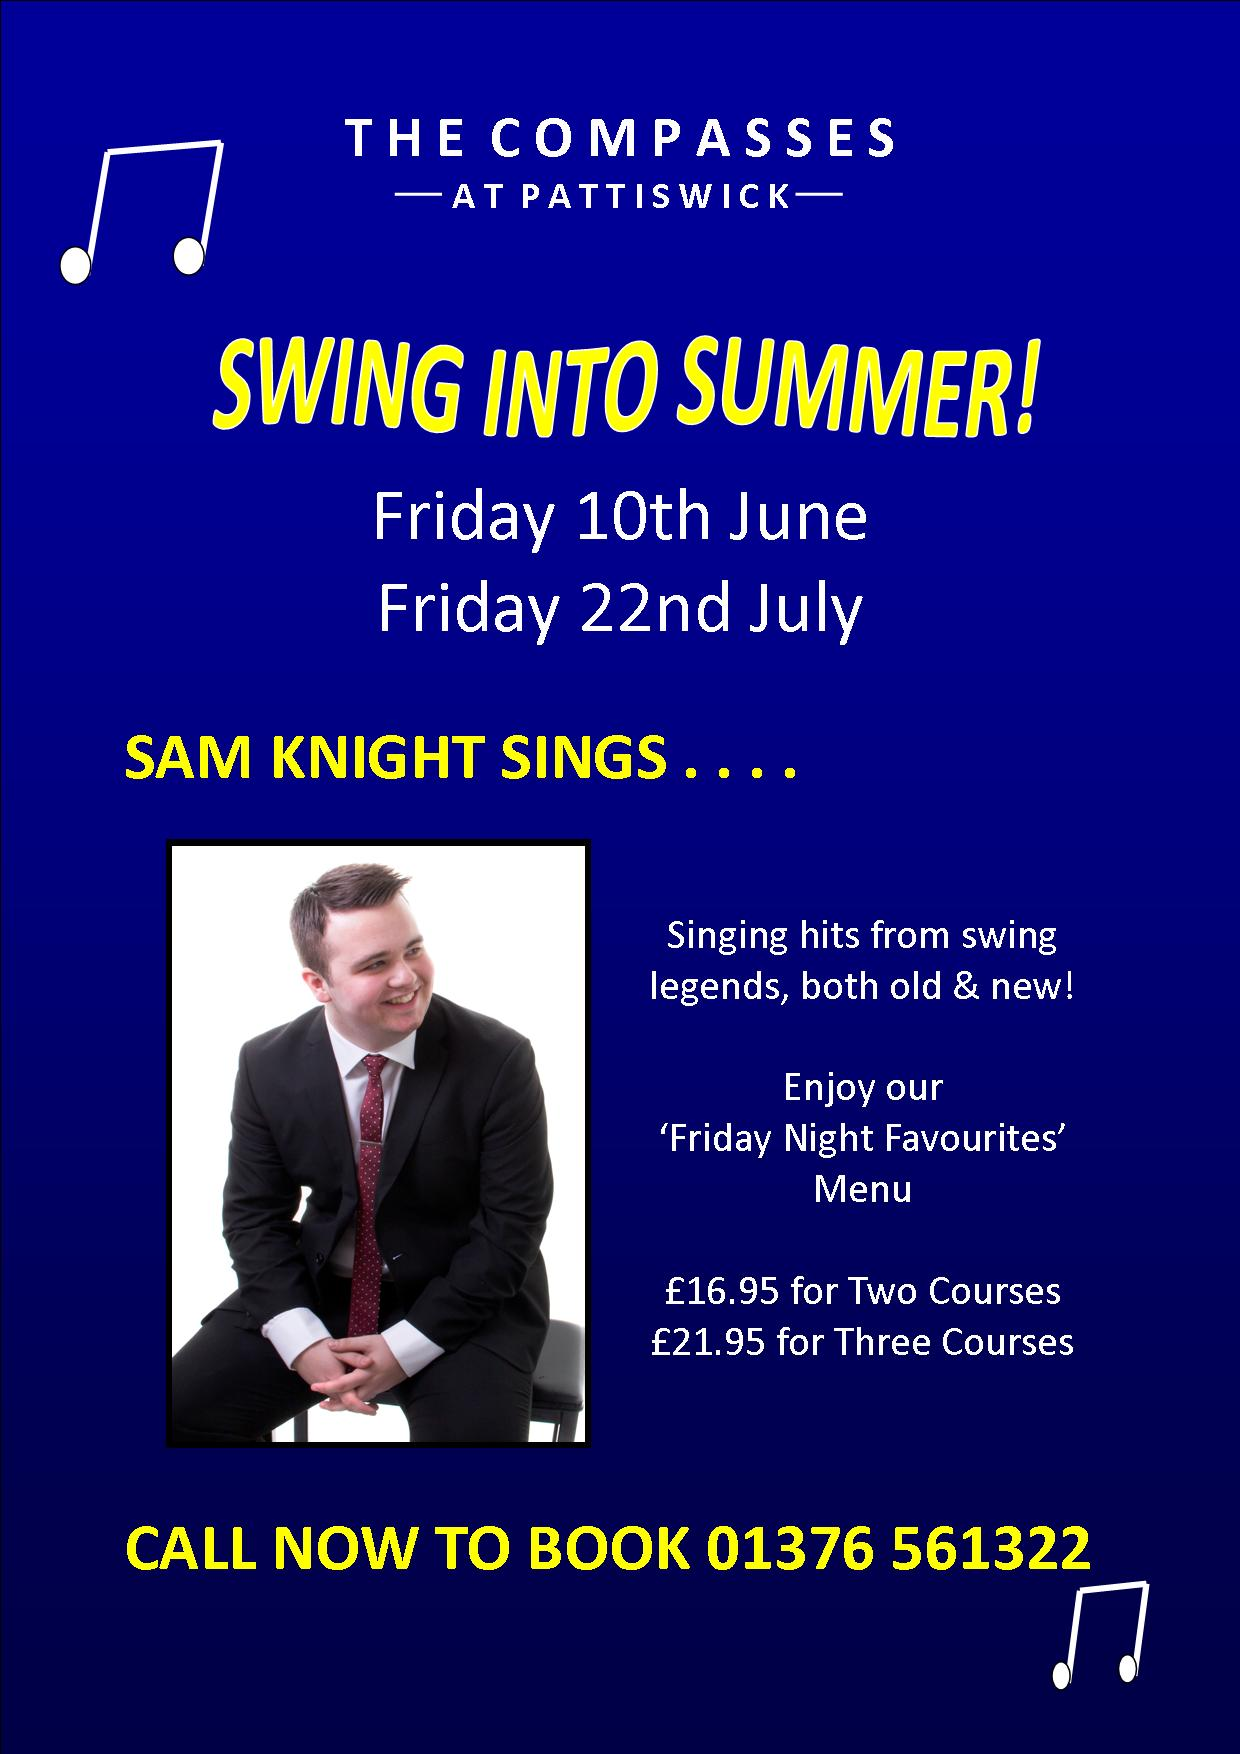 SWING INTO SUMMER! Live Music from Sam Knight